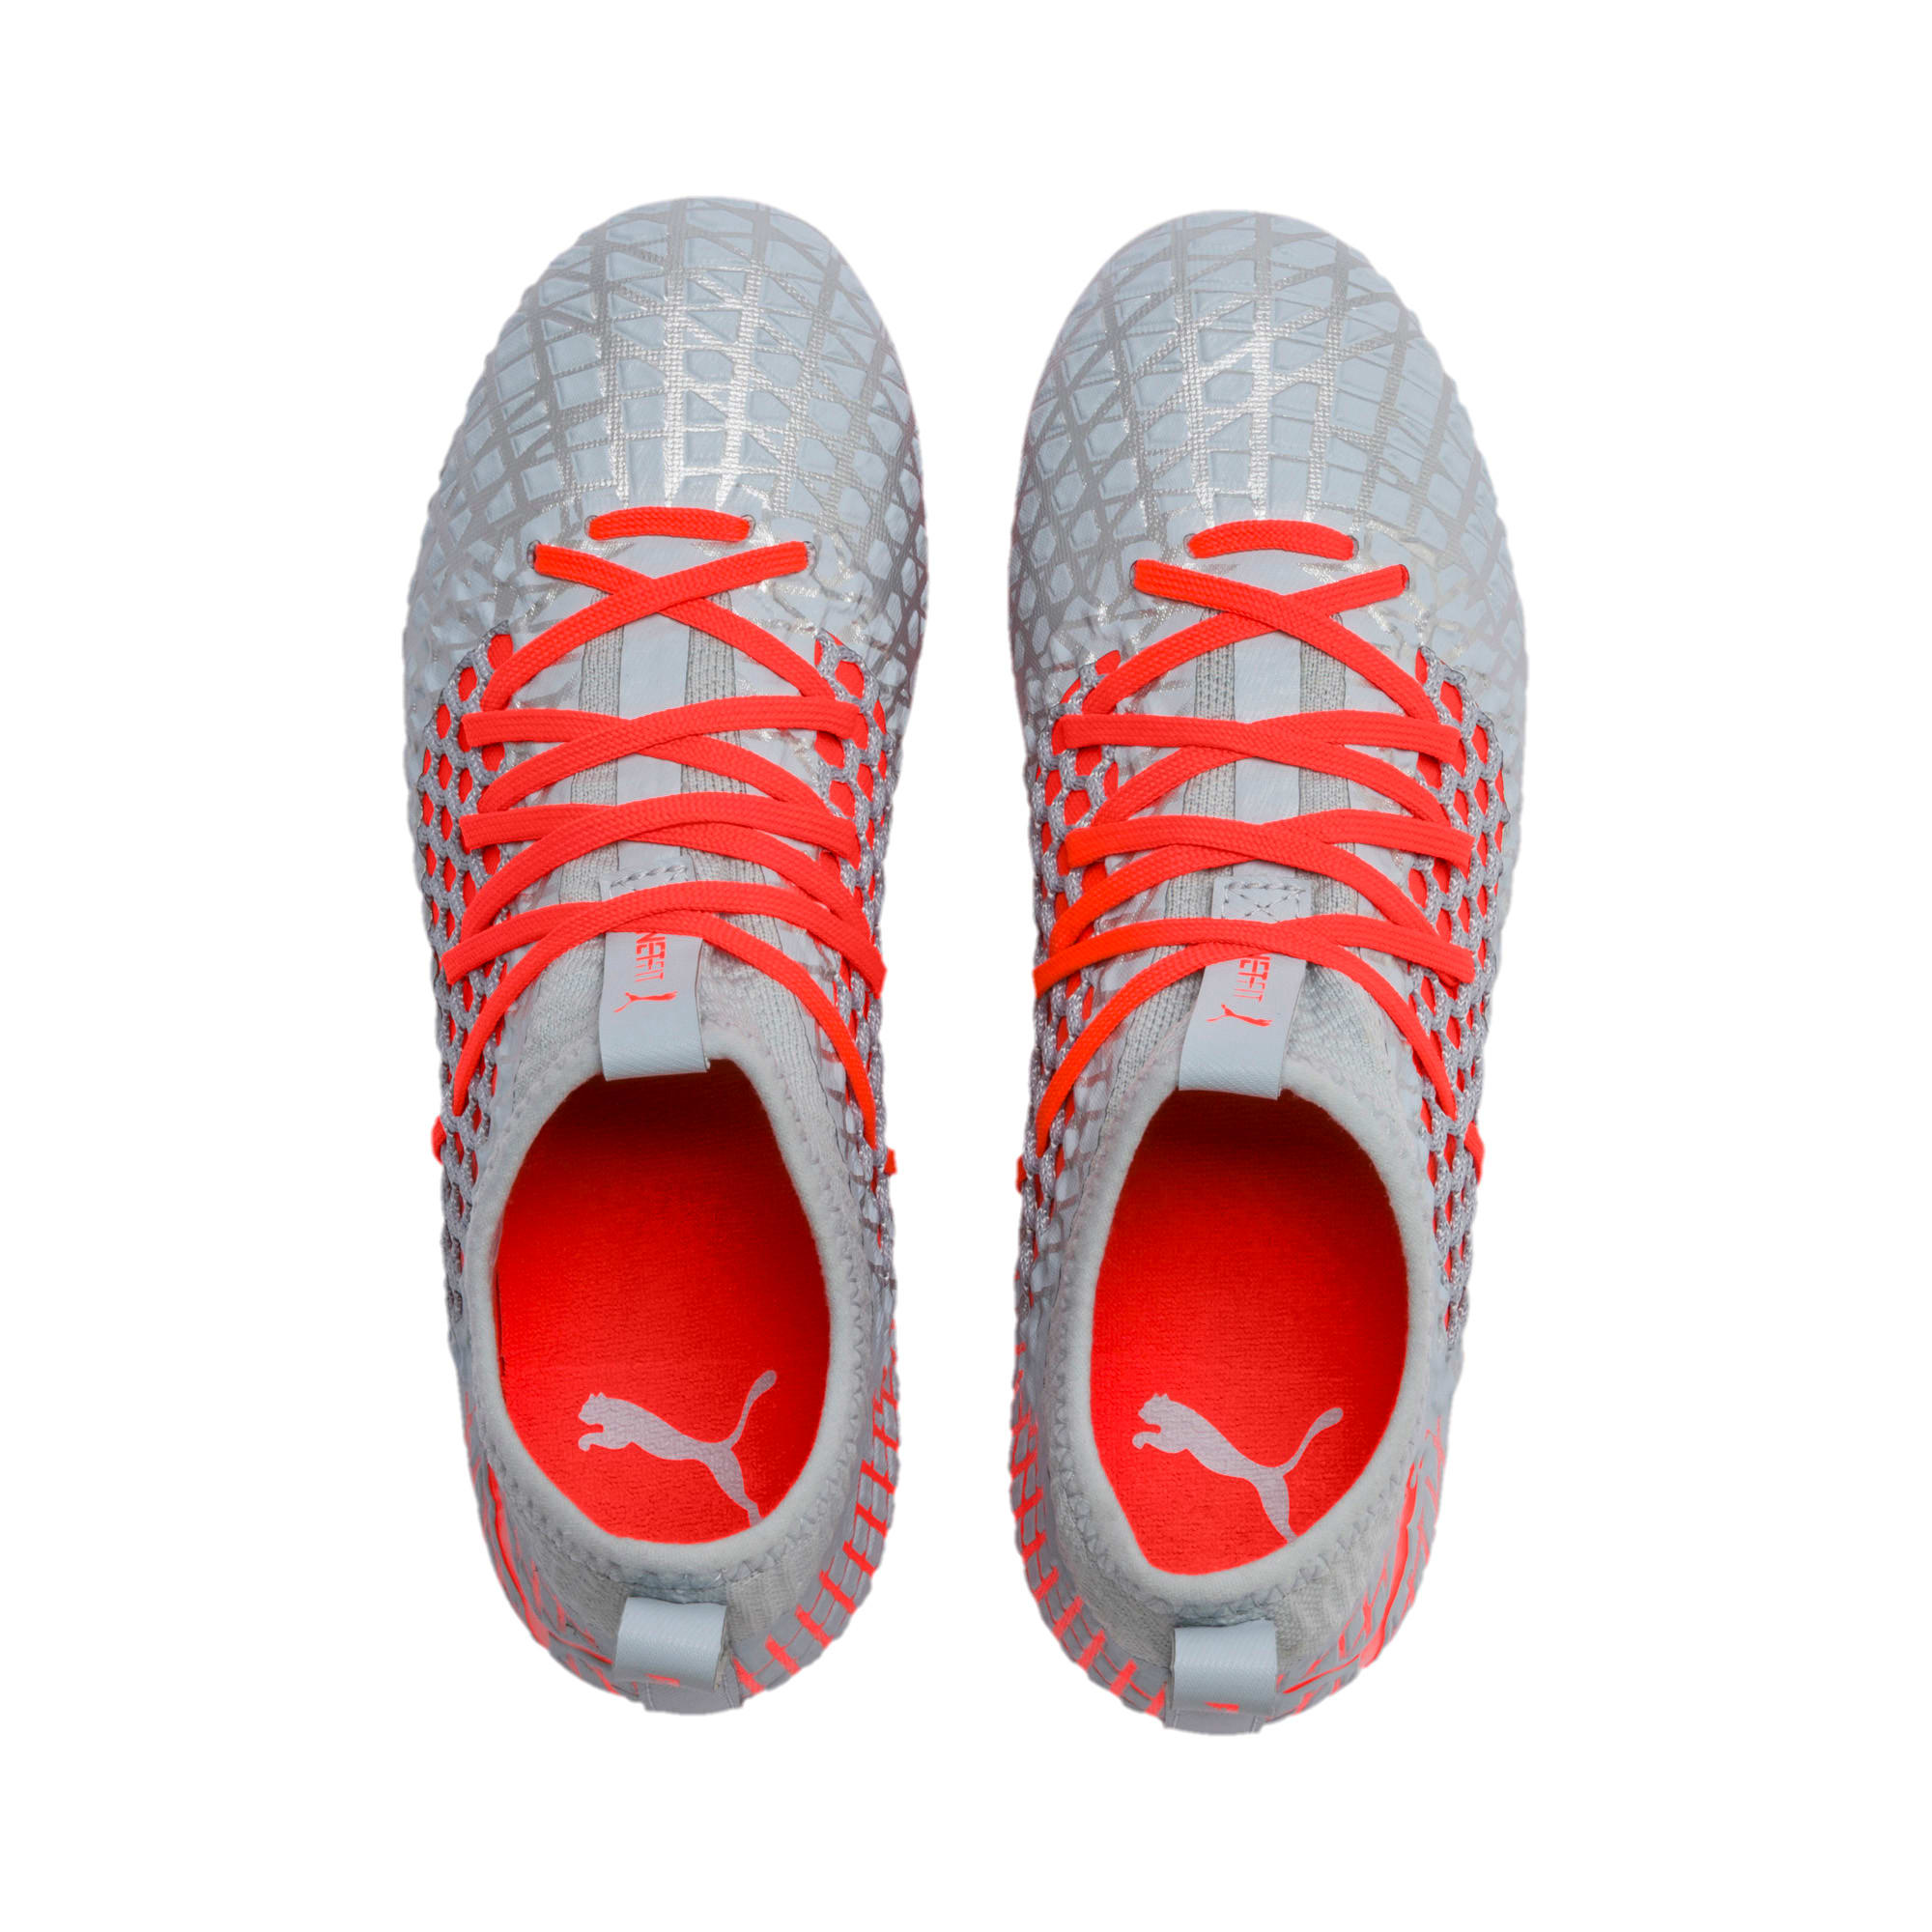 Thumbnail 6 of FUTURE 4.3 NETFIT Youth FG/AG Football Boots, Glacial Blue-Nrgy Red, medium